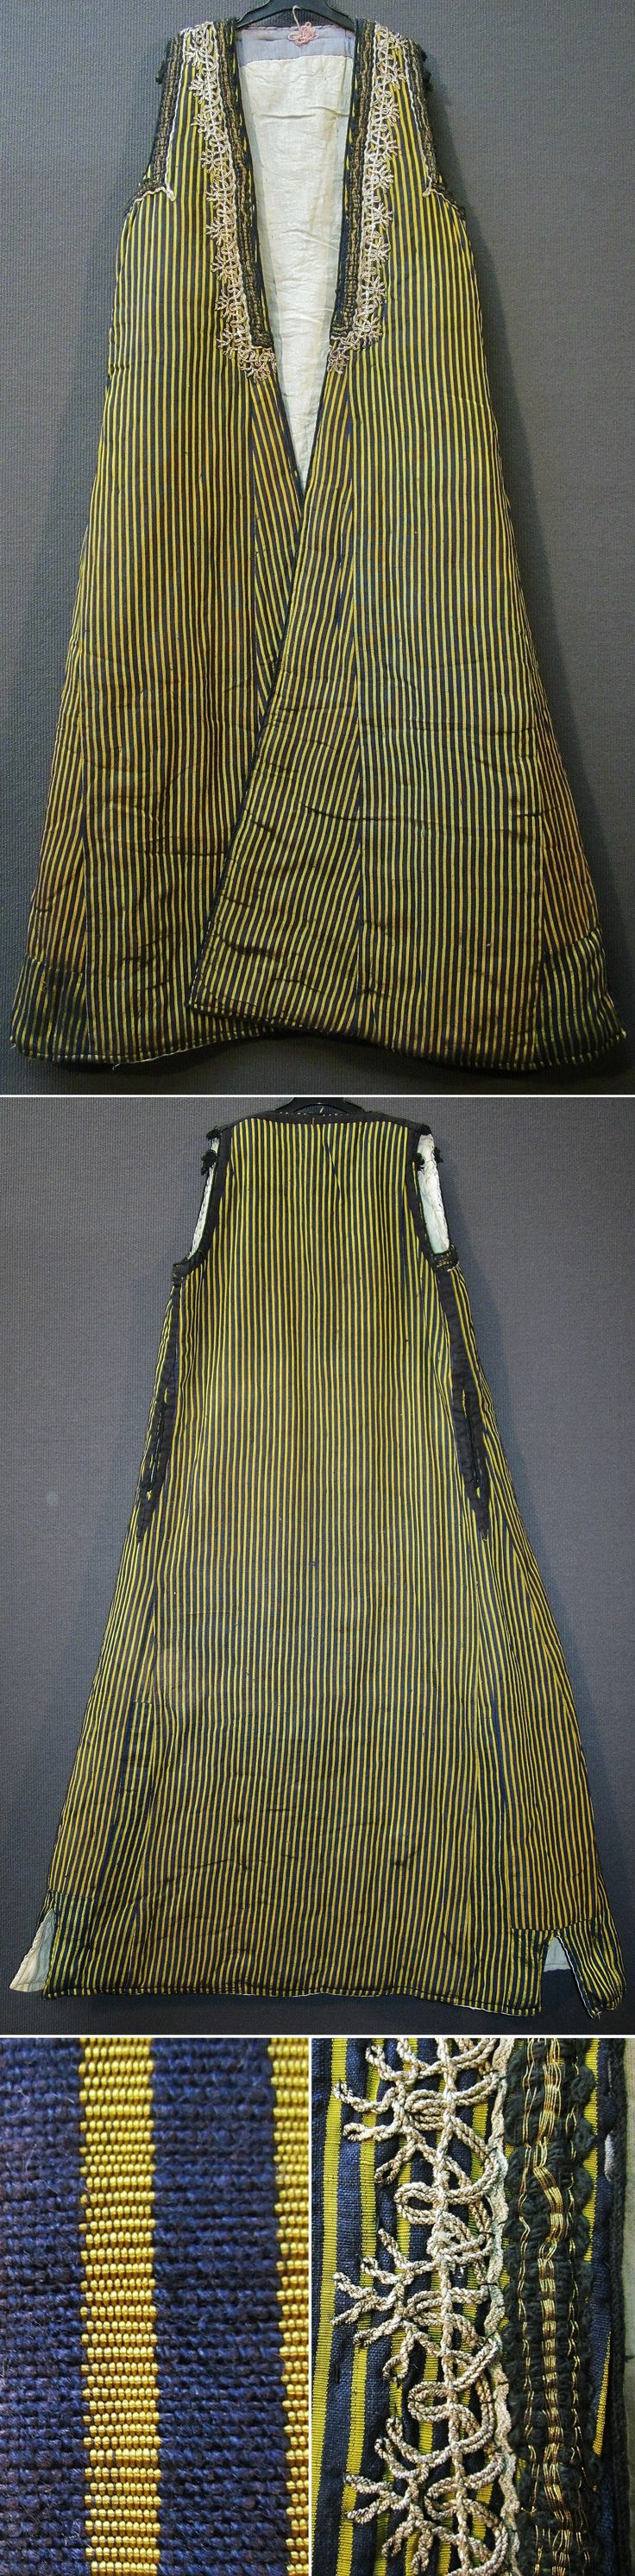 Traditional sleeveless caftan for women, from the rural Bartin region, ca. 1925-1950.  Sometimes called 'uzun yelek' (long vest) or (locally) 'uskuta'.  Made of a striped silk fabric; quilted and lined with white cotton.  The neck is adorned with metallic (silver) thread embroidery and black & golden braid; the armholes additionally feature some (small) black silk tassels.   (Inv.n° kaf013 - Kavak Costume Collection - Antwerpen/Belgium).